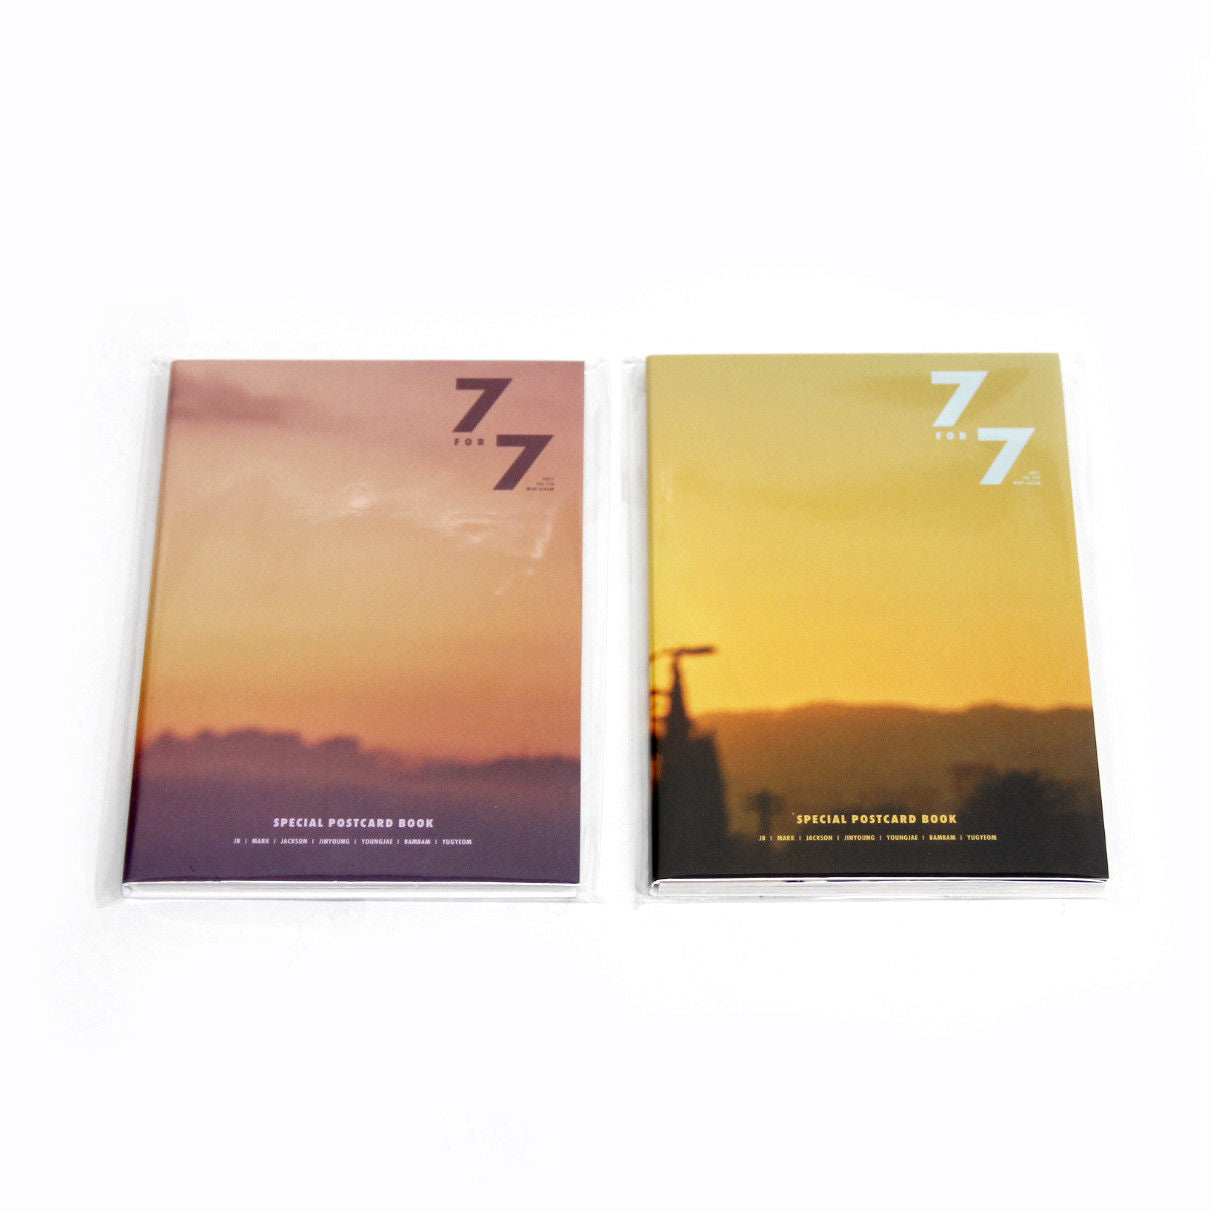 [GOT7 Postcard Book]7 for 7 Special Postcard Book